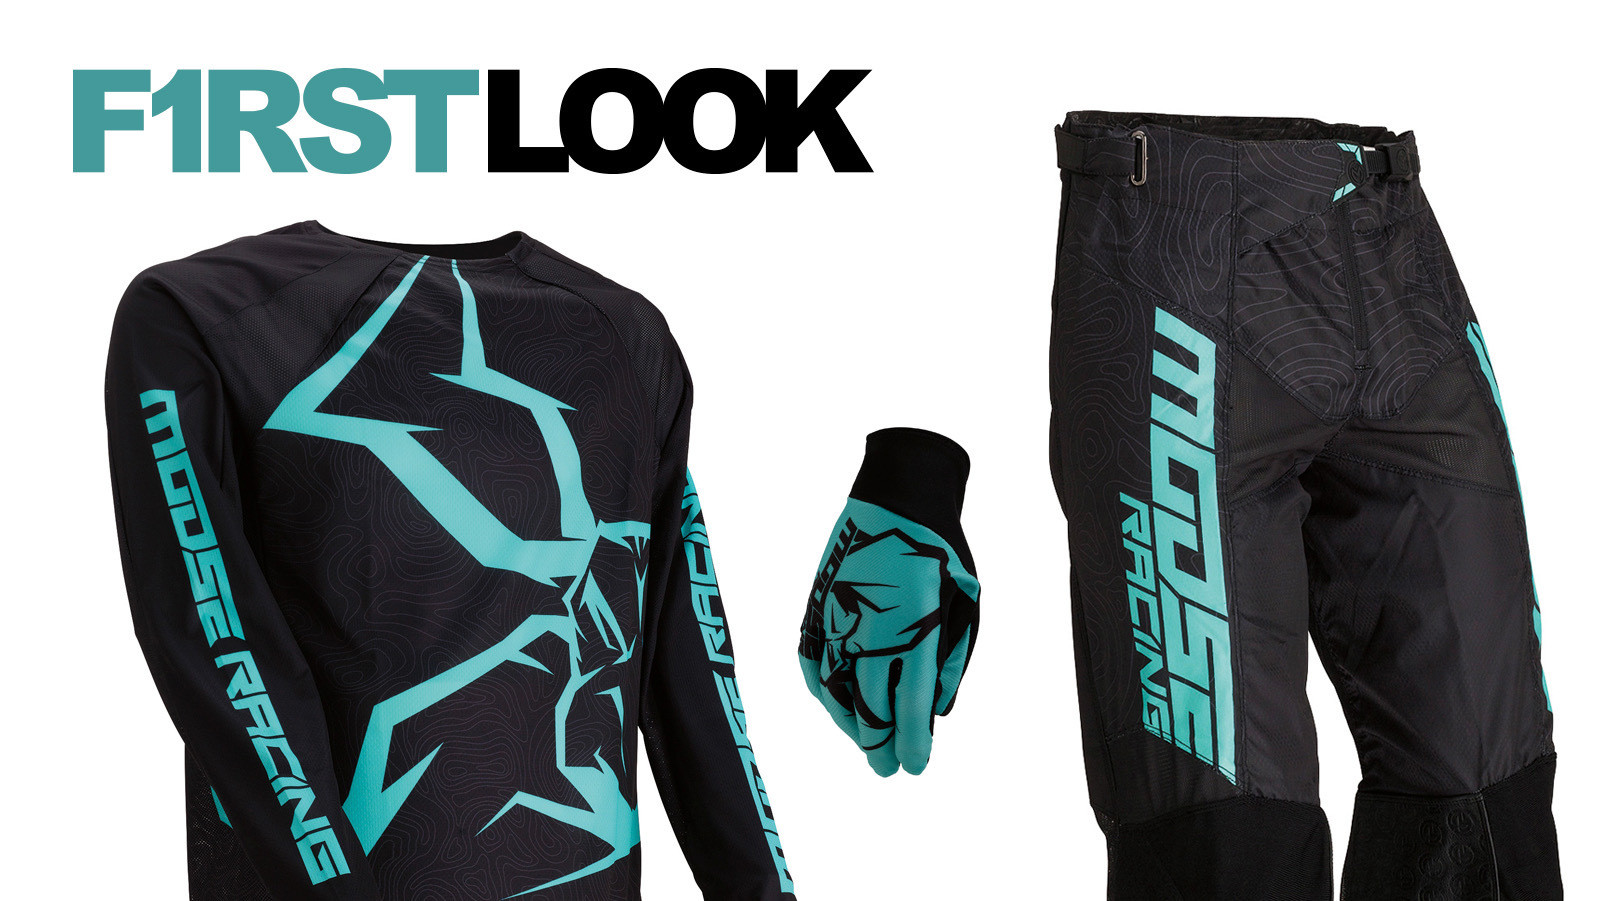 First Look: Moose Racing Spring 2019 M1 Agroid Gear